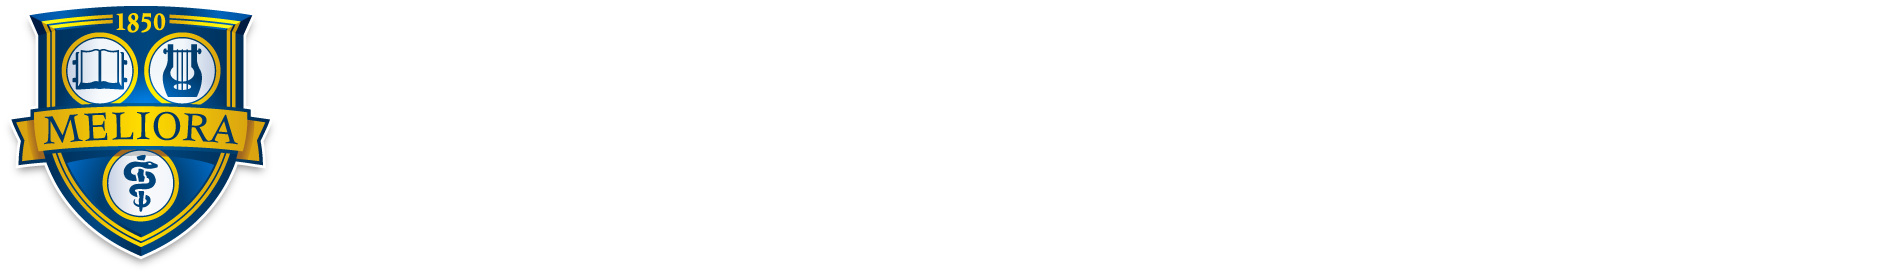 UR Medicine Thompson Health Logo with Meliora shield